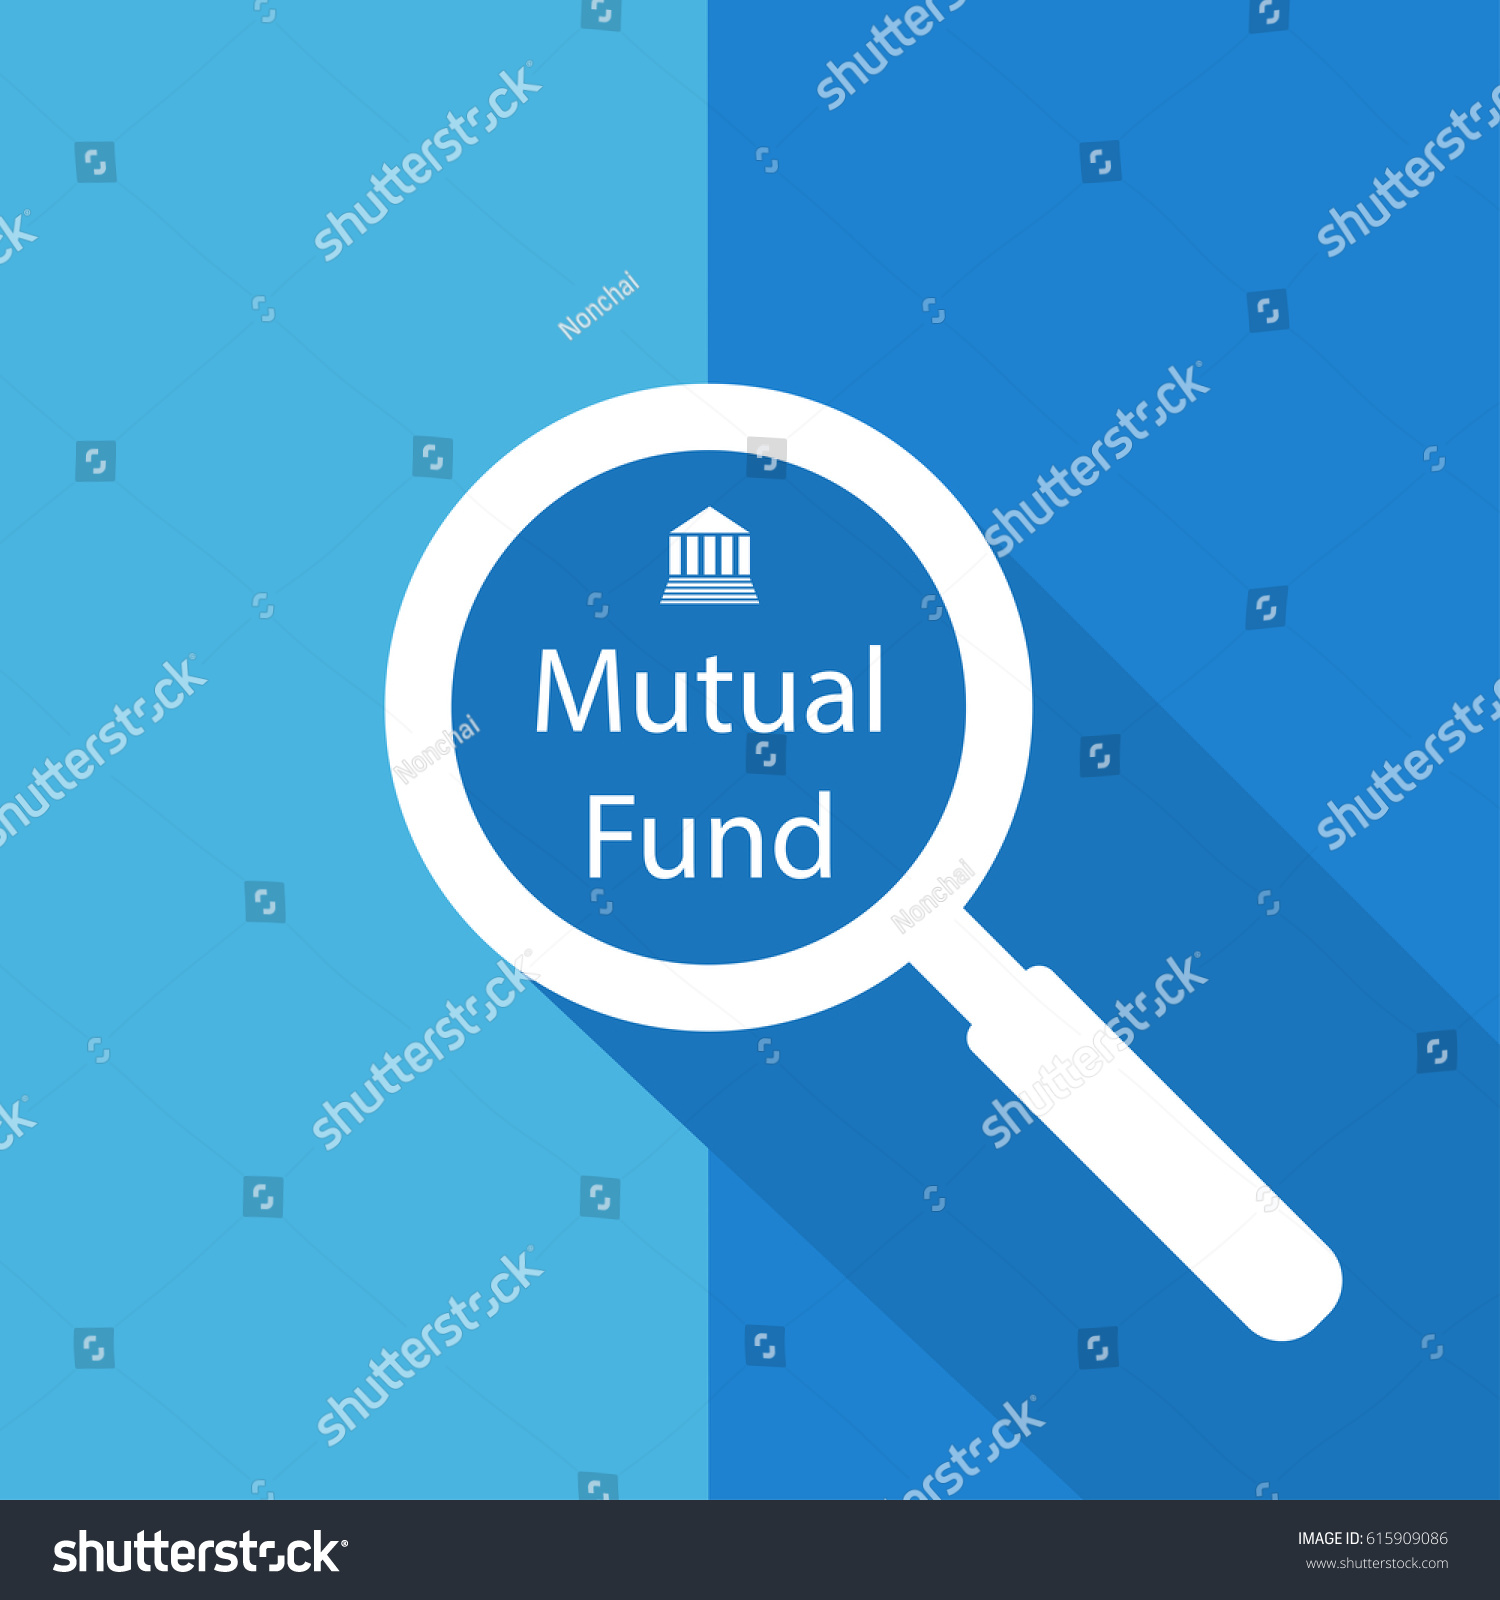 Search find mutual fund symbol icon stock vector 615909086 search or find mutual fund symbol icon sign with long shadow biocorpaavc Images